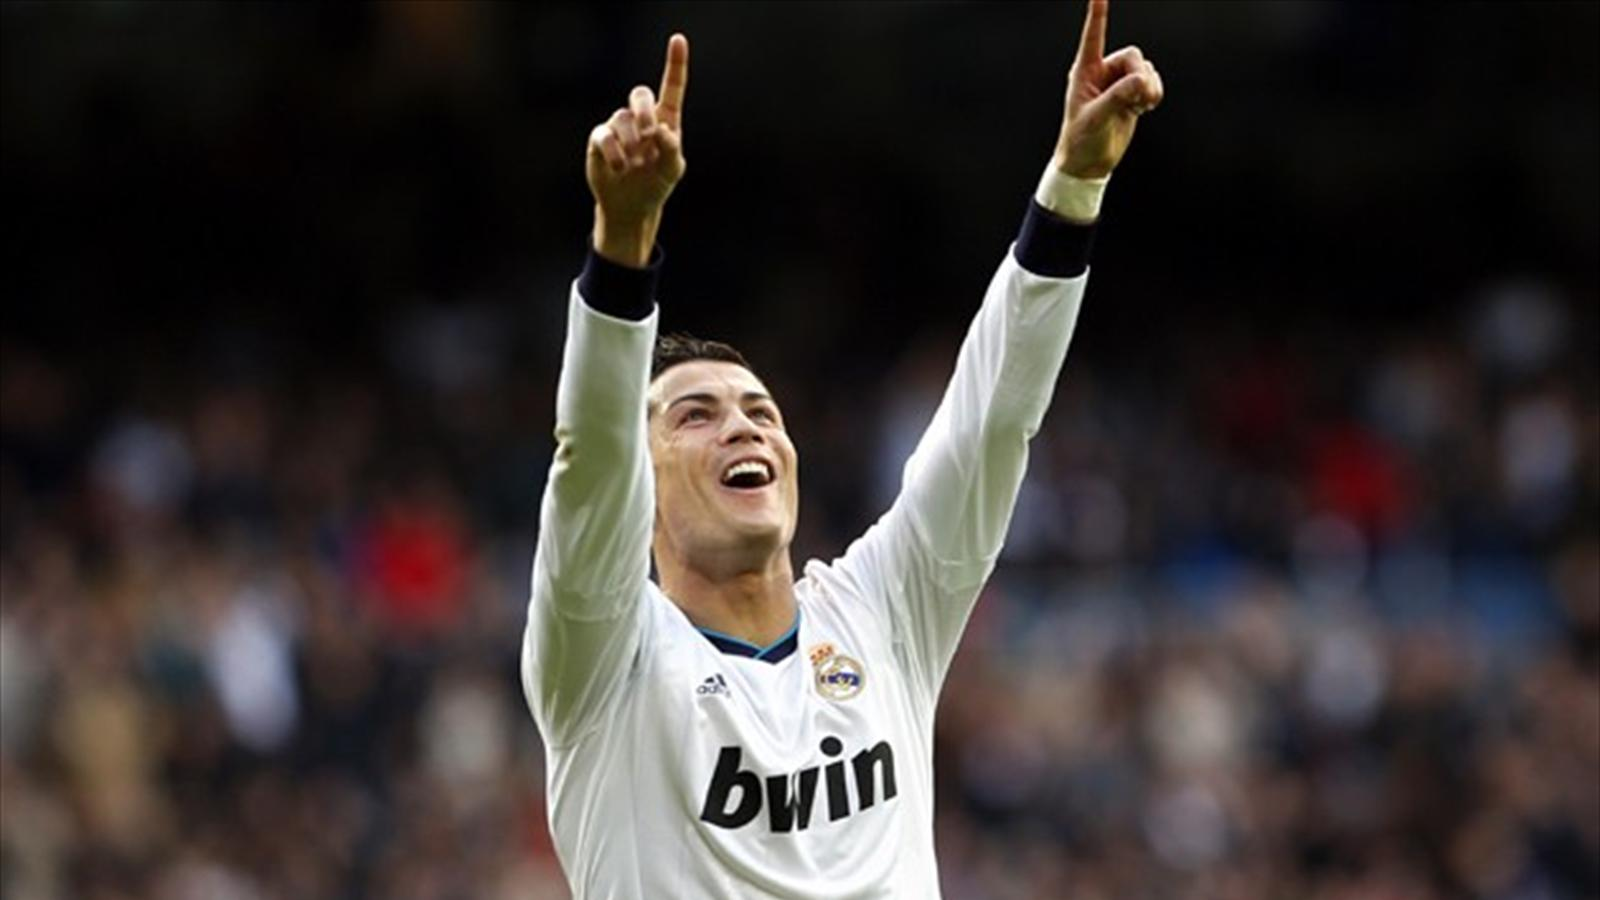 why do i like cristiano ronaldo It is not possible to say in few words why i like cristiano ronaldo he's handsome or a big celebriety but his god gifted skill has drawn my all attention according to me he is the best footballer in the world in his era.